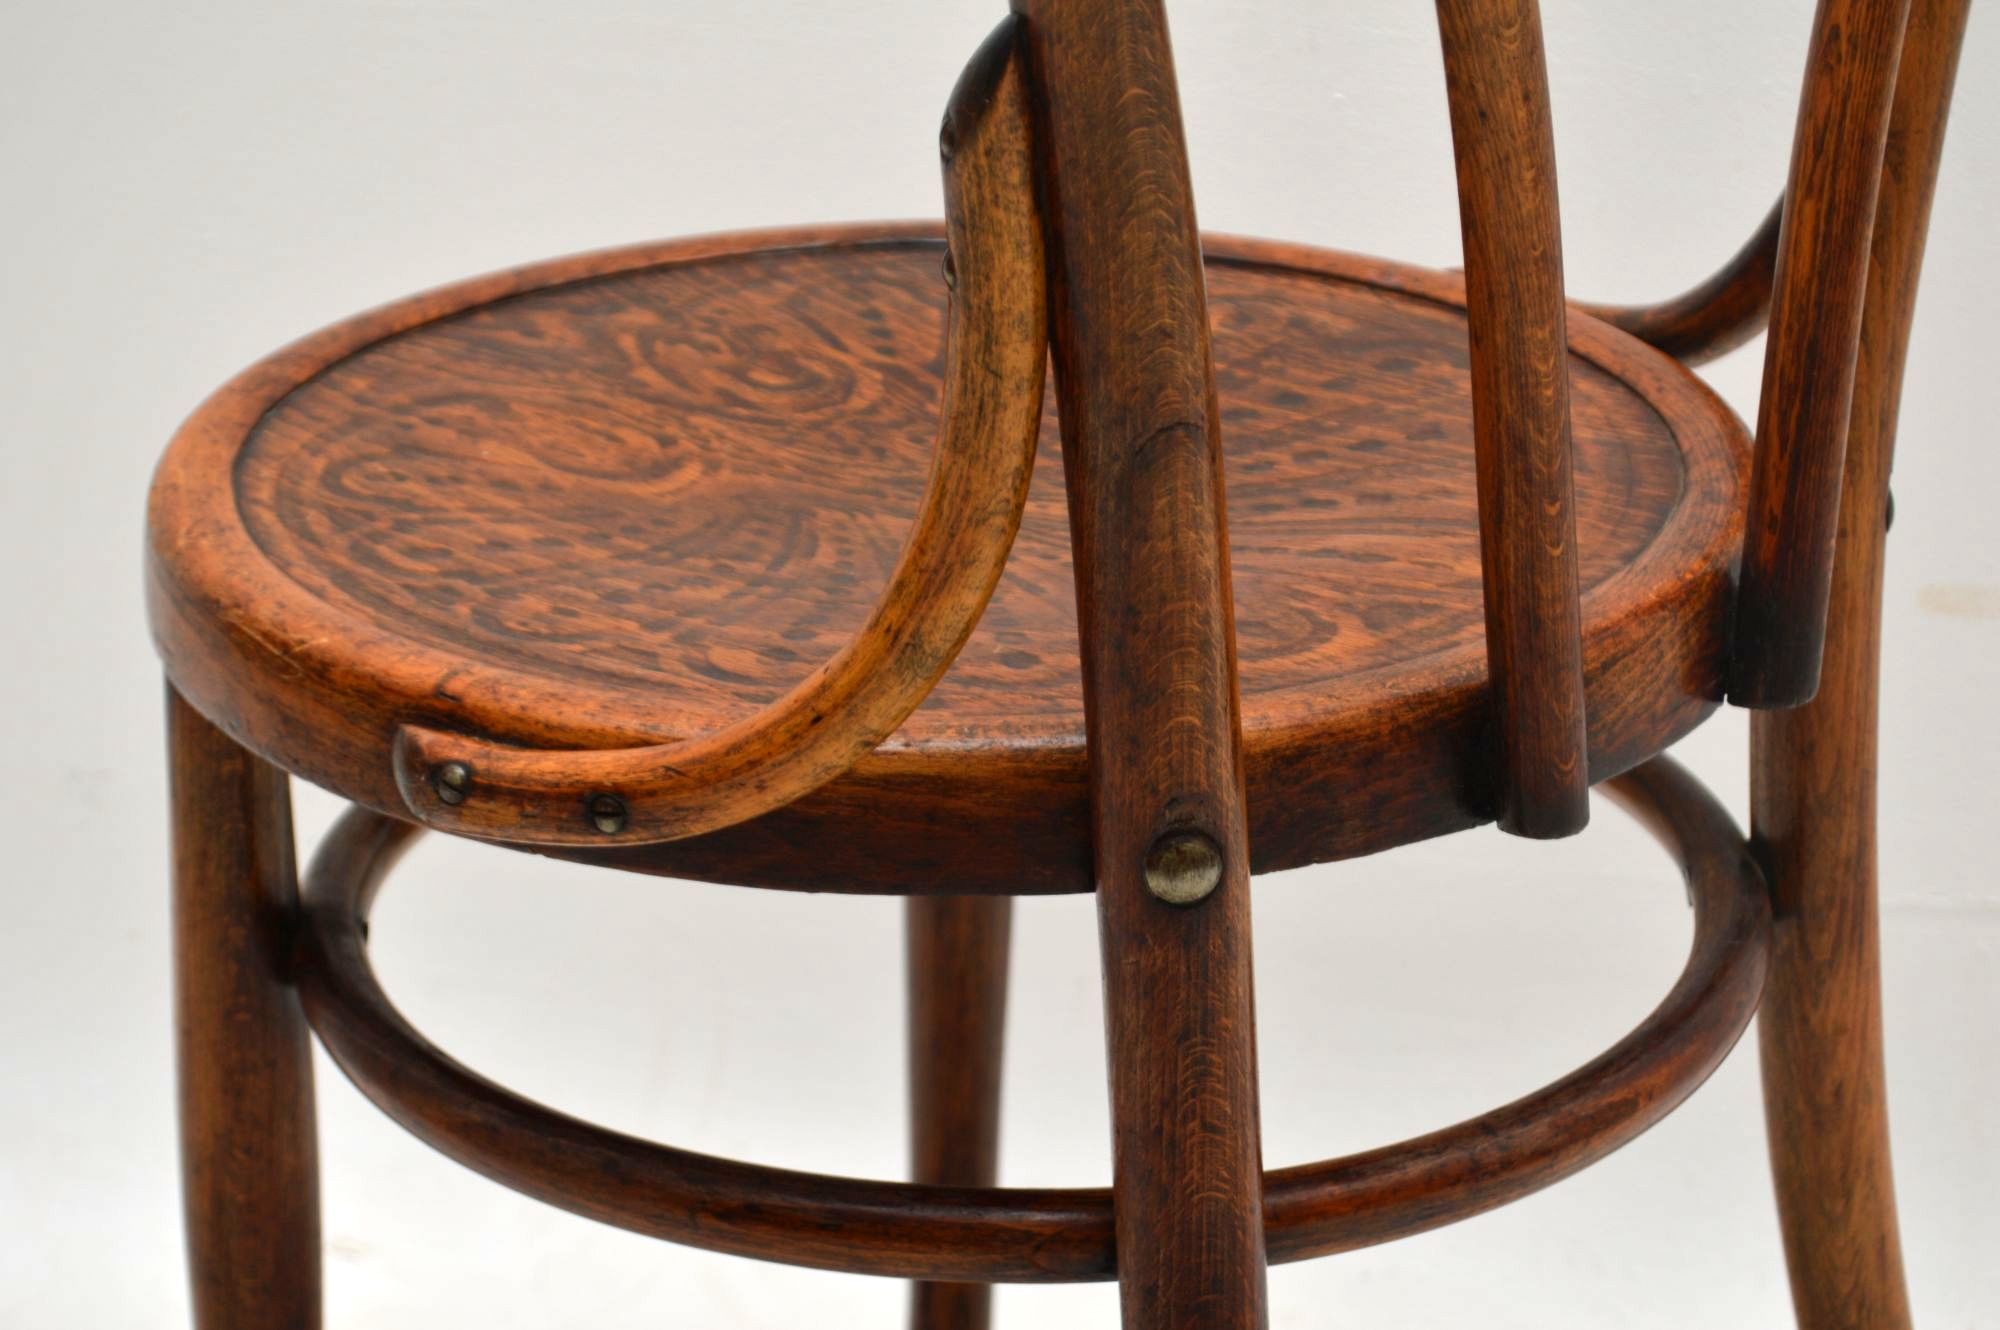 Hand Carried Chair >> Antique Vintage Bentwood Thonet Cafe Chair | Retrospective ...